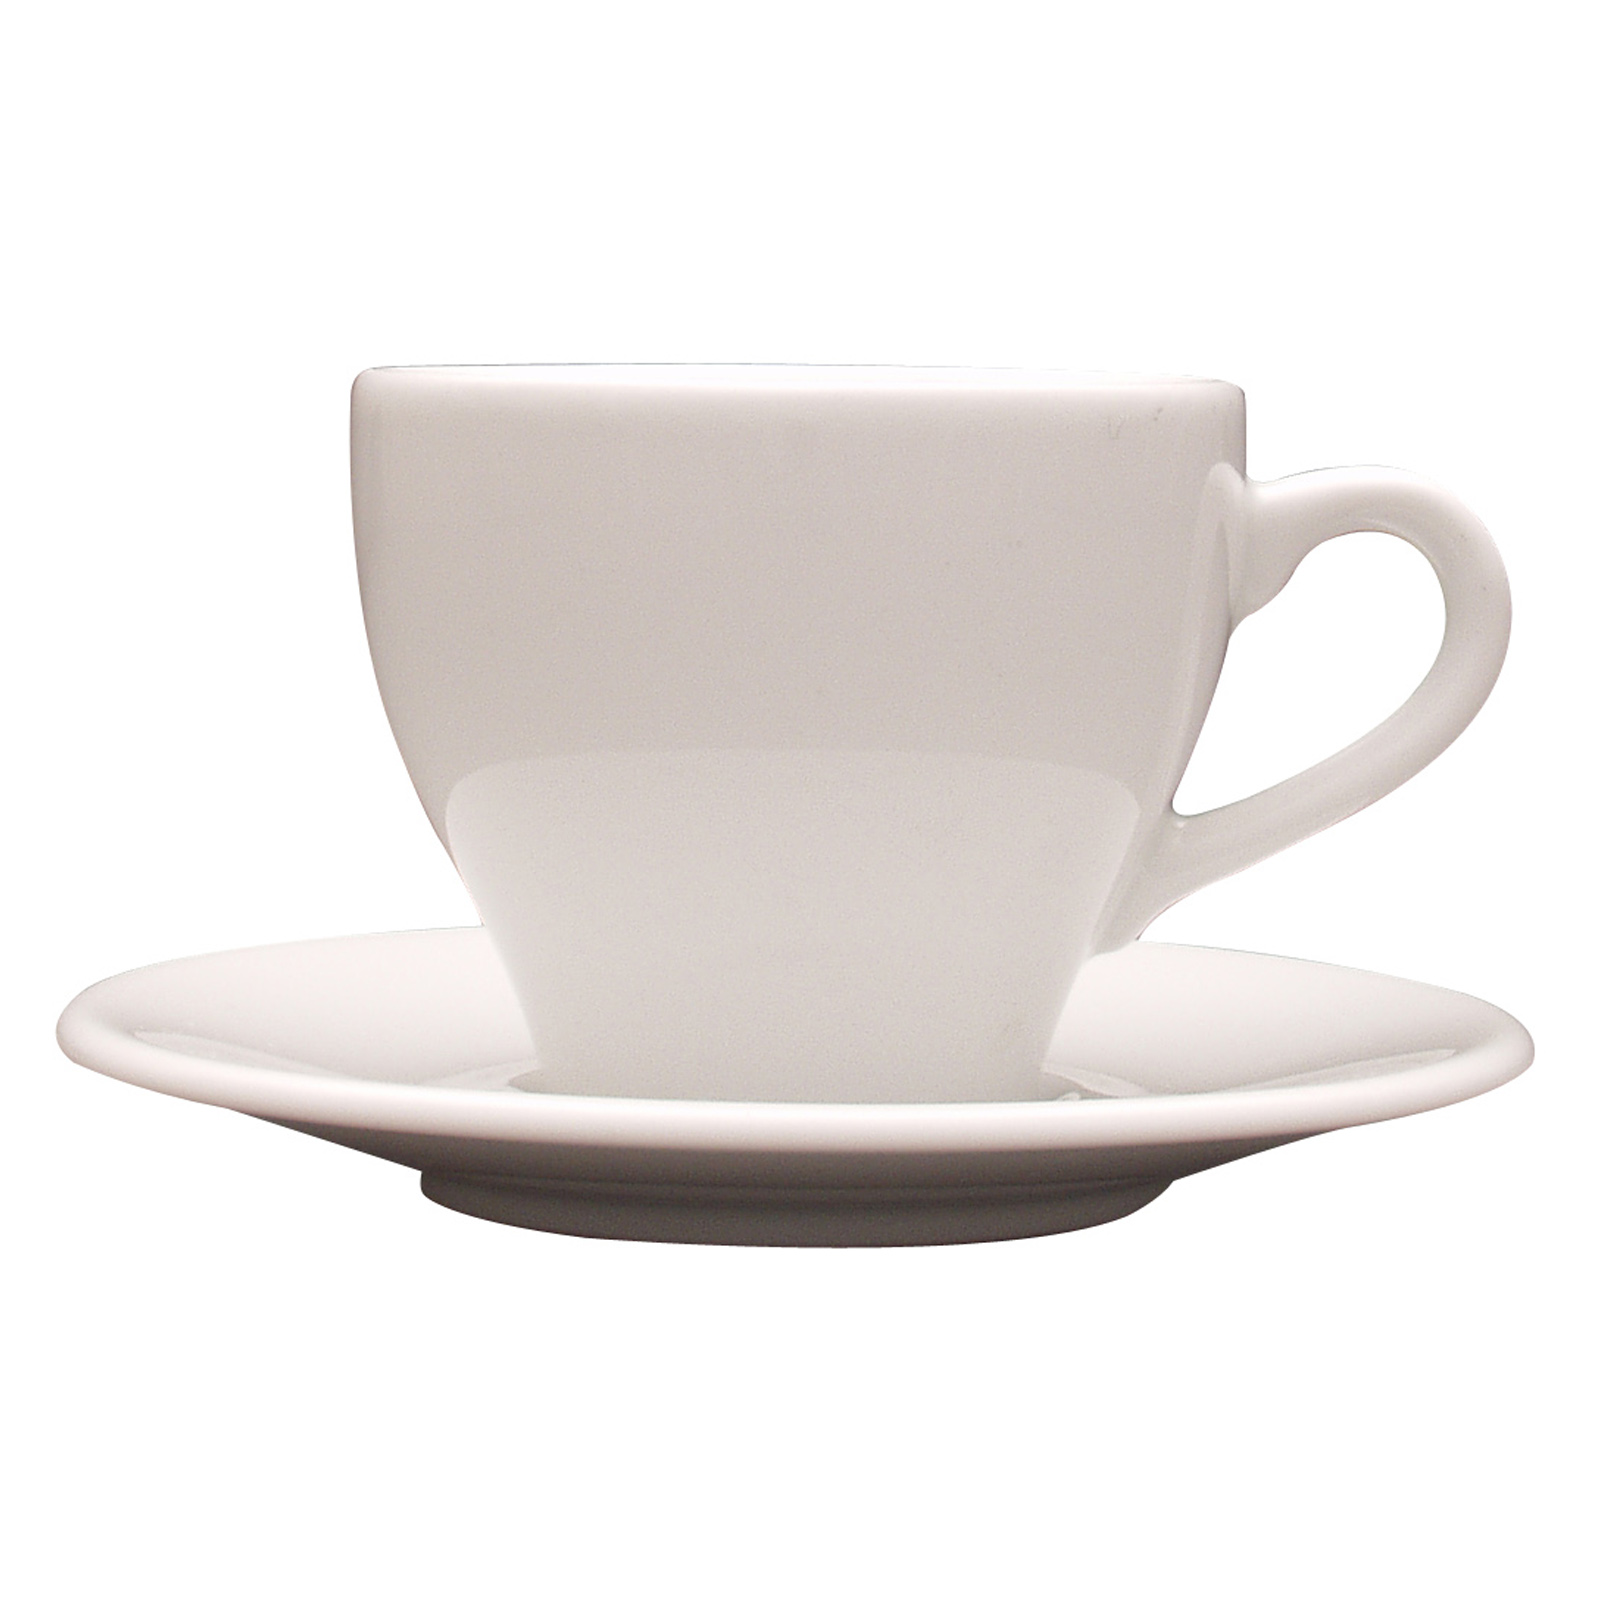 Set of 24 Paula Espresso Cups by Lubiana